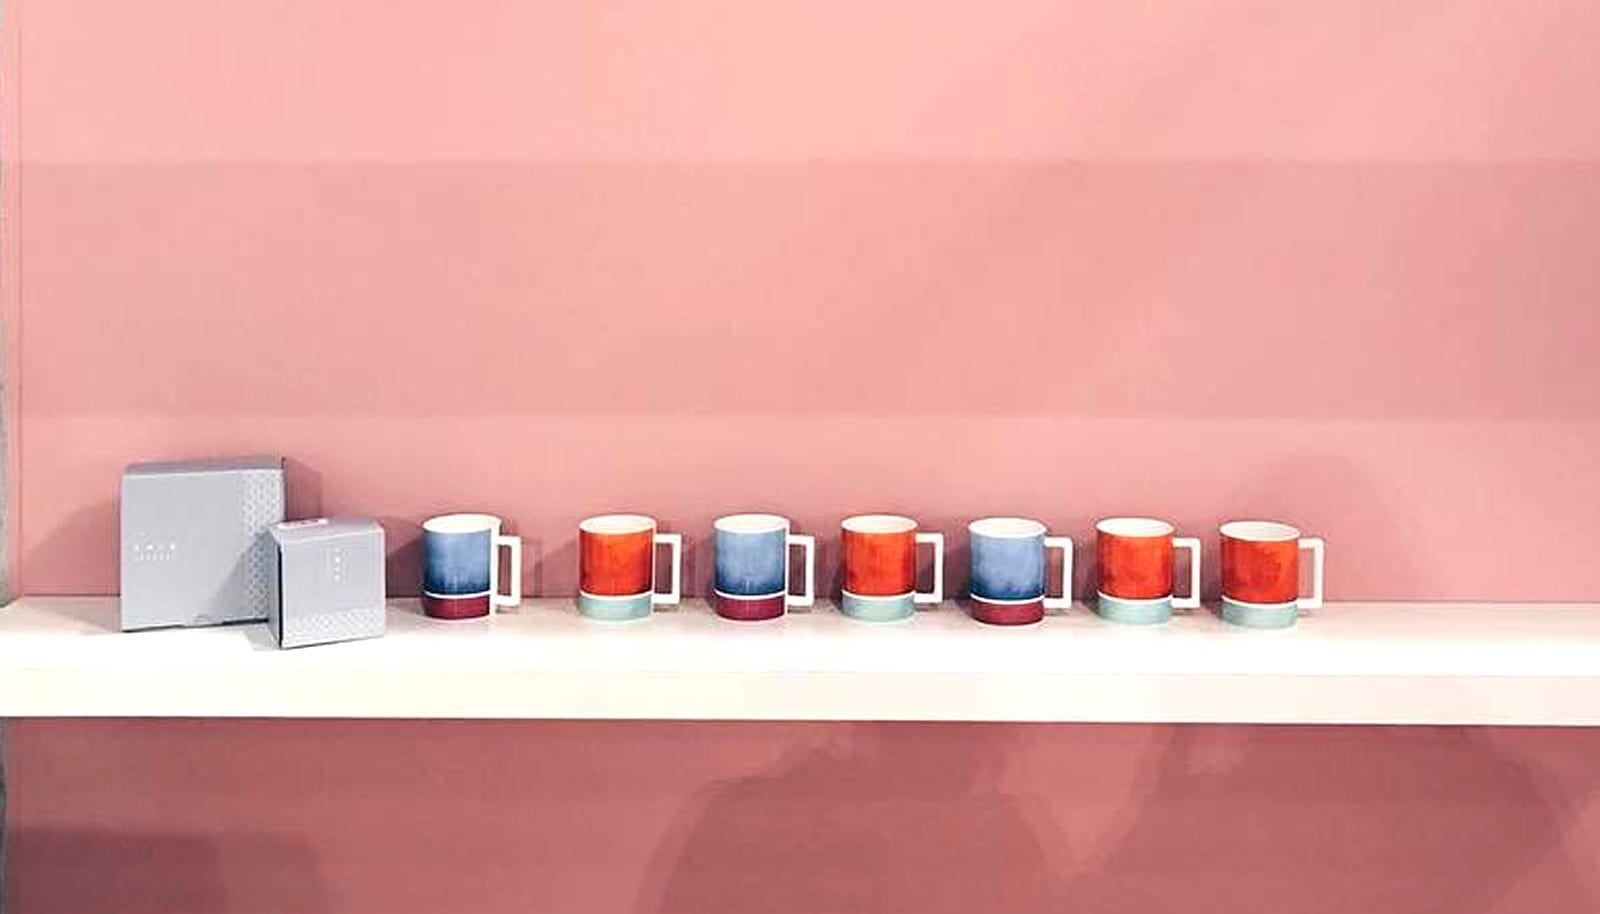 a row of mugs against a pink wall